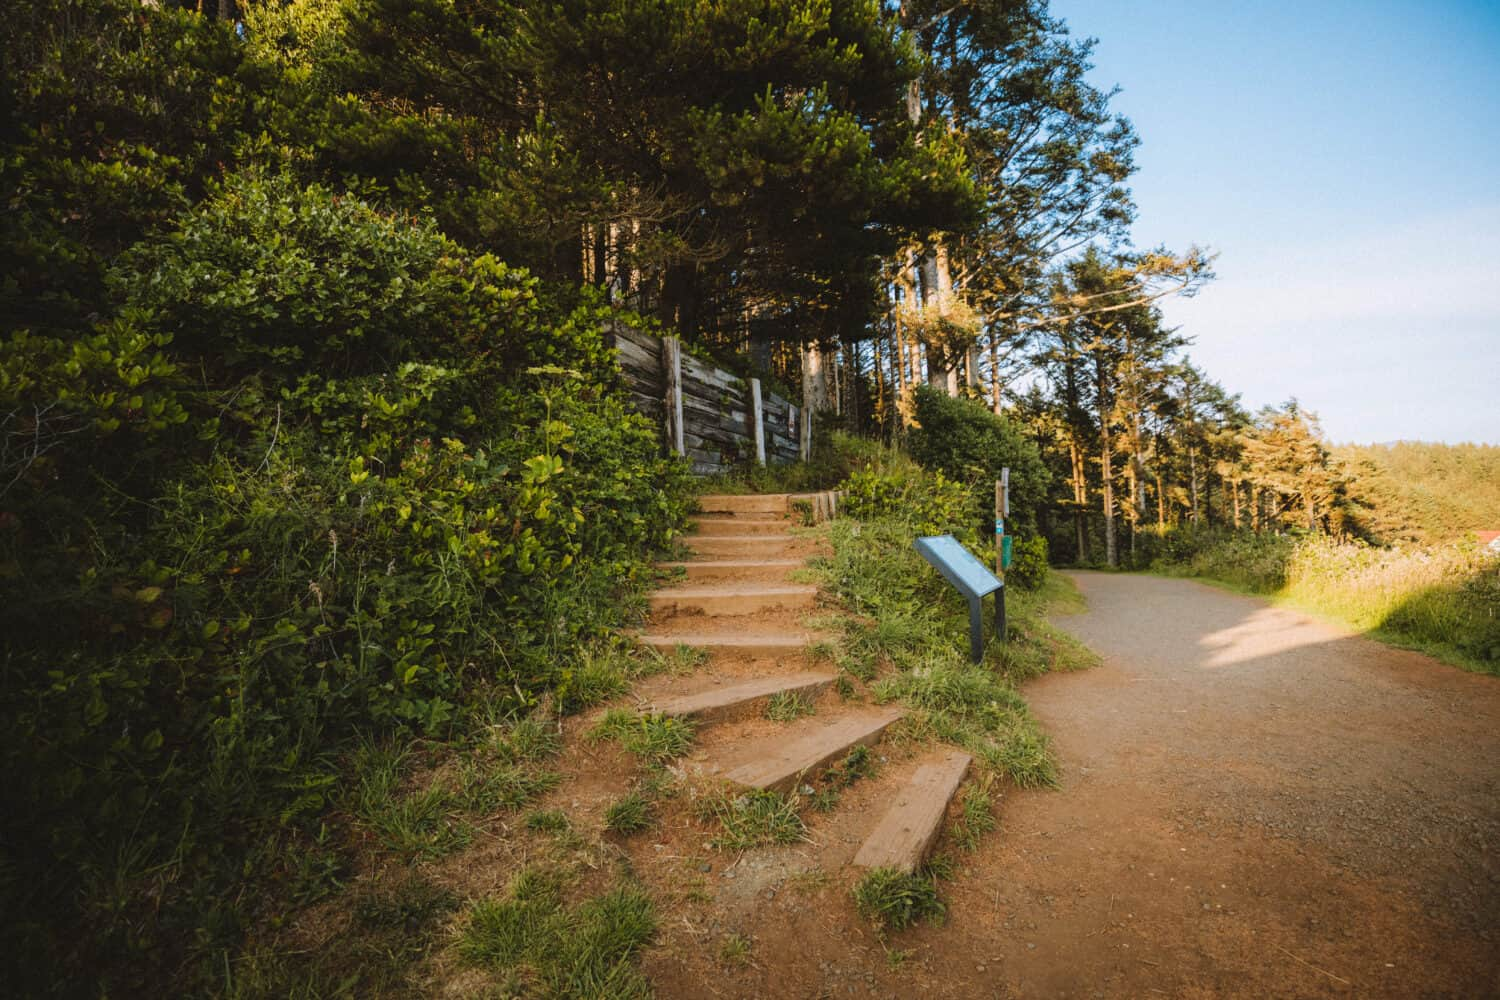 Stairs up to trails around Heceta Head Scenic Viewpoint